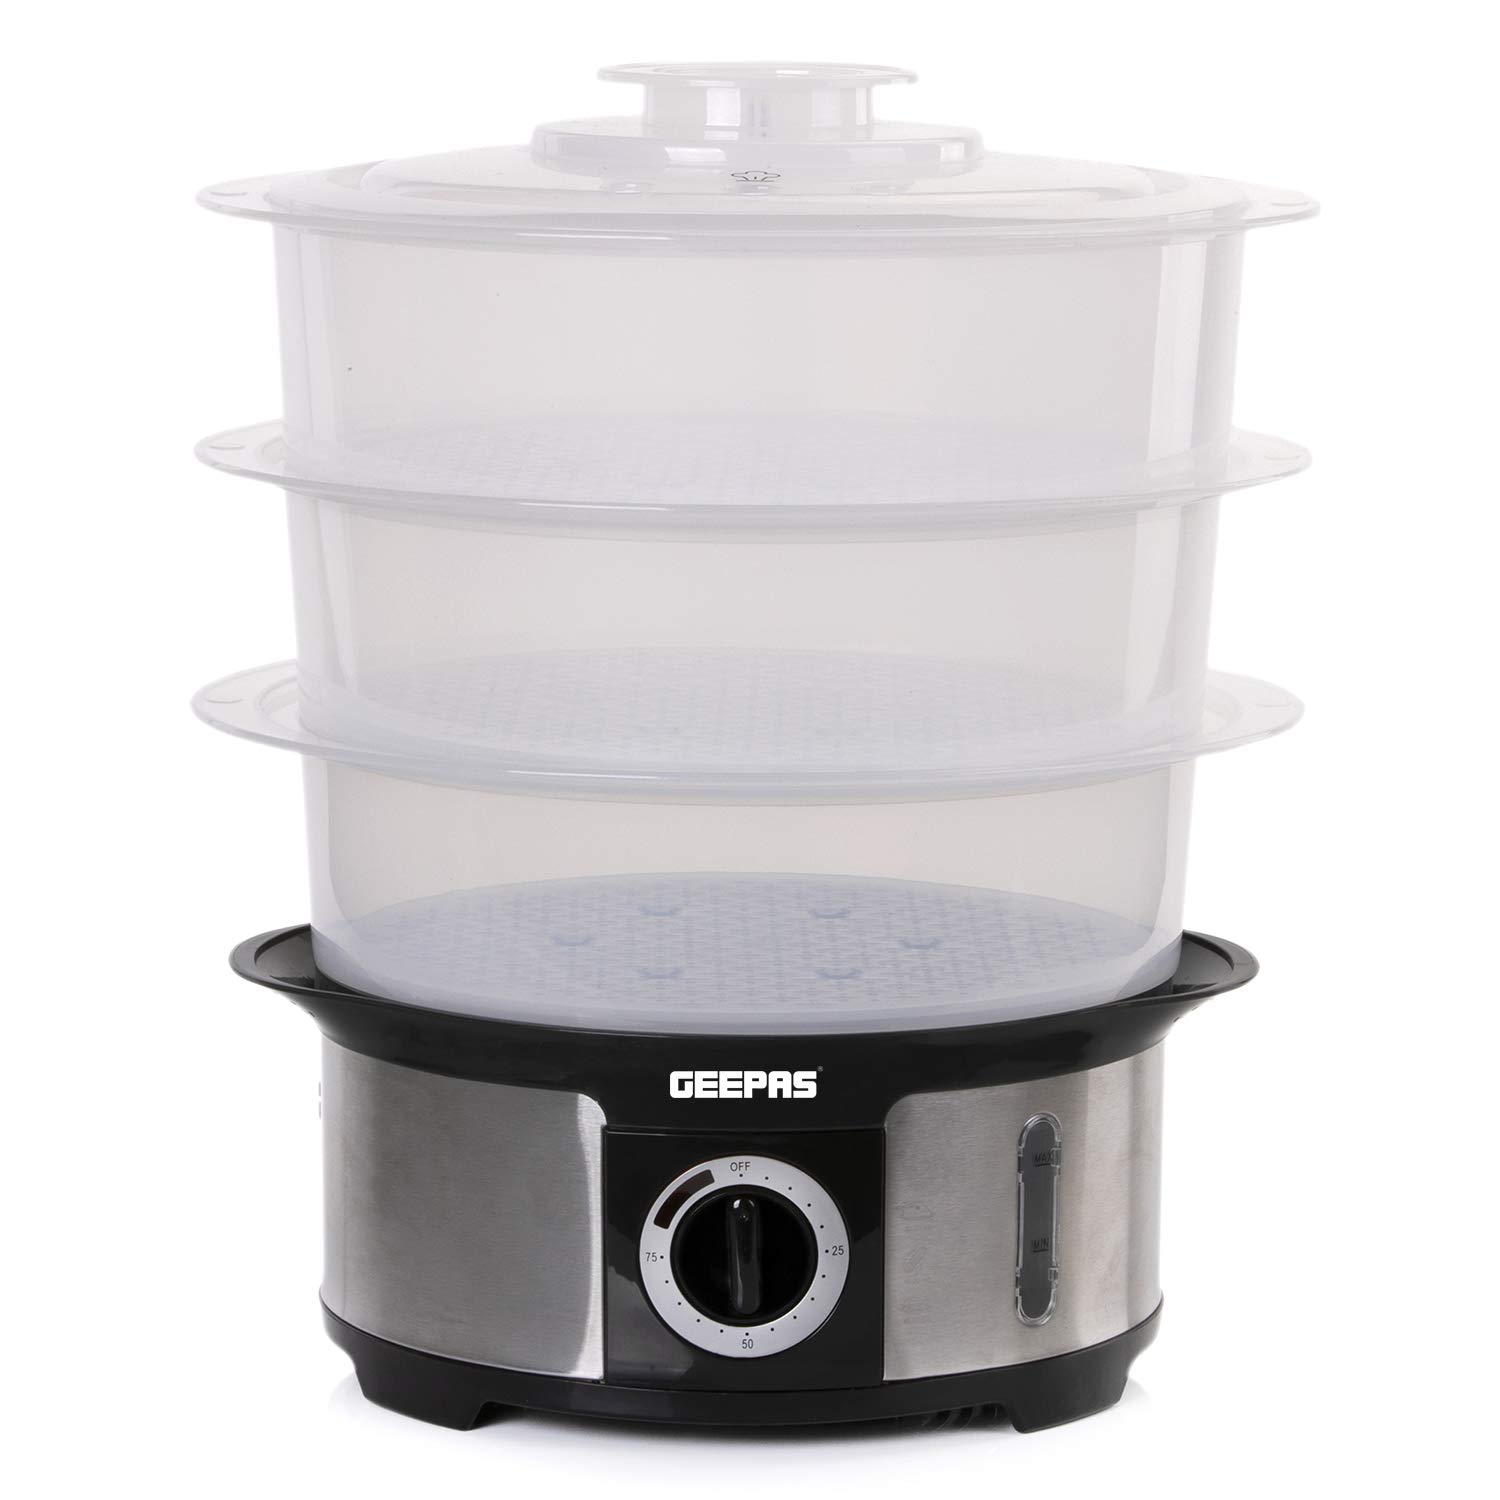 Geepas 1000W Electric Food Steamers 3 Tier for General Use, 12L Capacity, Stainless Steel - an Excellent Assistant in The Cooking of Healthy and Delicious Dishes – 2 Year Warranty